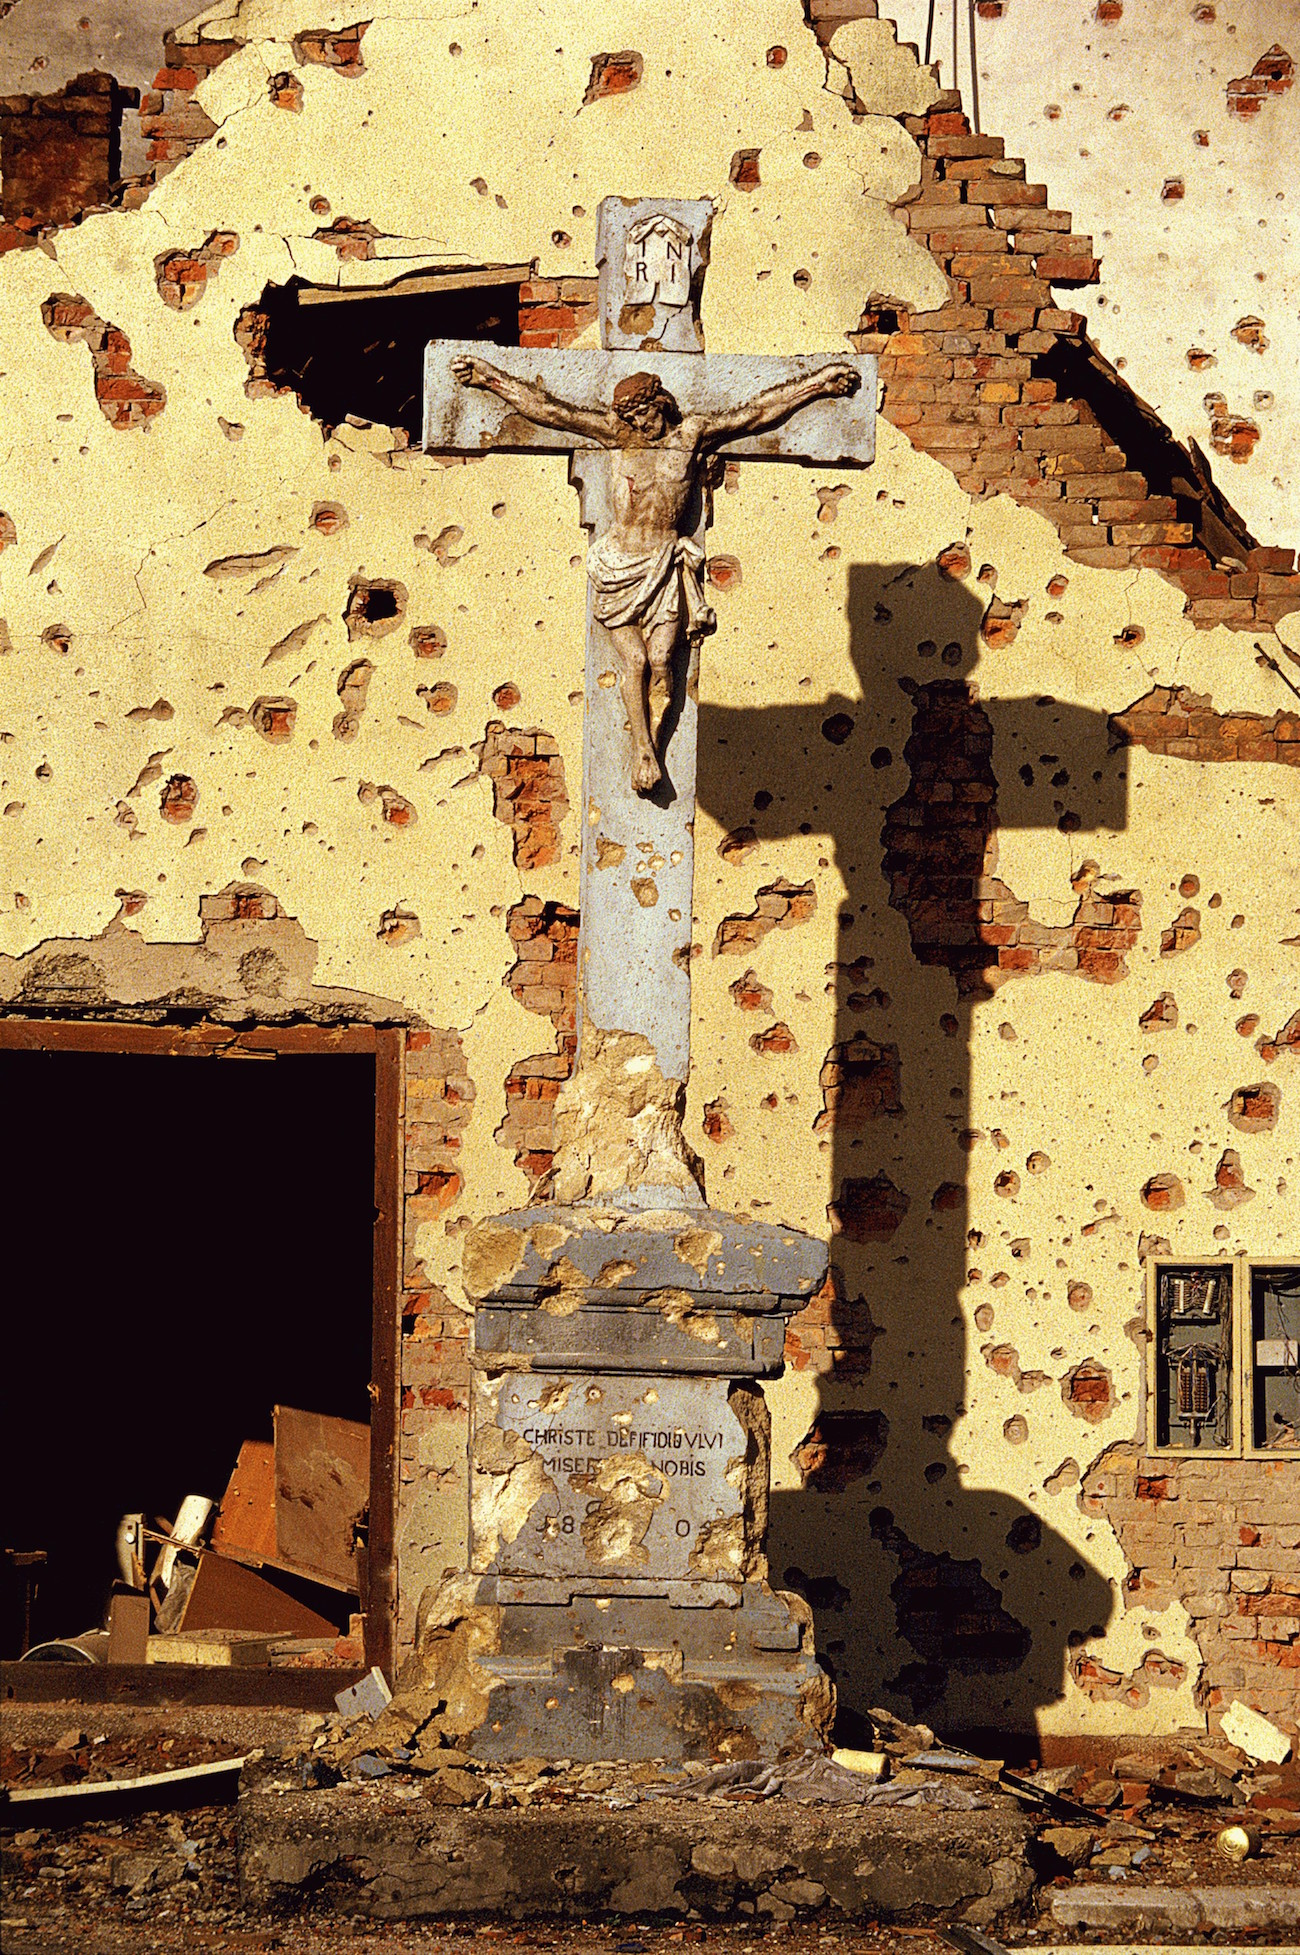 Violence and Destruction - A destroyed Roman Catholic cross in Vukovar, Croatia, Nov. 25, 1991. Vukovar was under siege for three months by Serbian forces and was completely destroyed., Image: 116177945, License: Rights-managed, Restrictions: Content available for editorial use, pre-approval required for all other uses. This content not available to be downloaded through Quick Pic Not available for license and invoicing to customers located in the Czech Republic. Not available for license and invoicing to customers located in the Netherlands. Not available for license and invoicing to customers located in India. Not available for license and invoicing to customers located in Italy. Not available for license and invoicing to customers located in Finland., Model Release: no, Credit line: Profimedia, Corbis VII